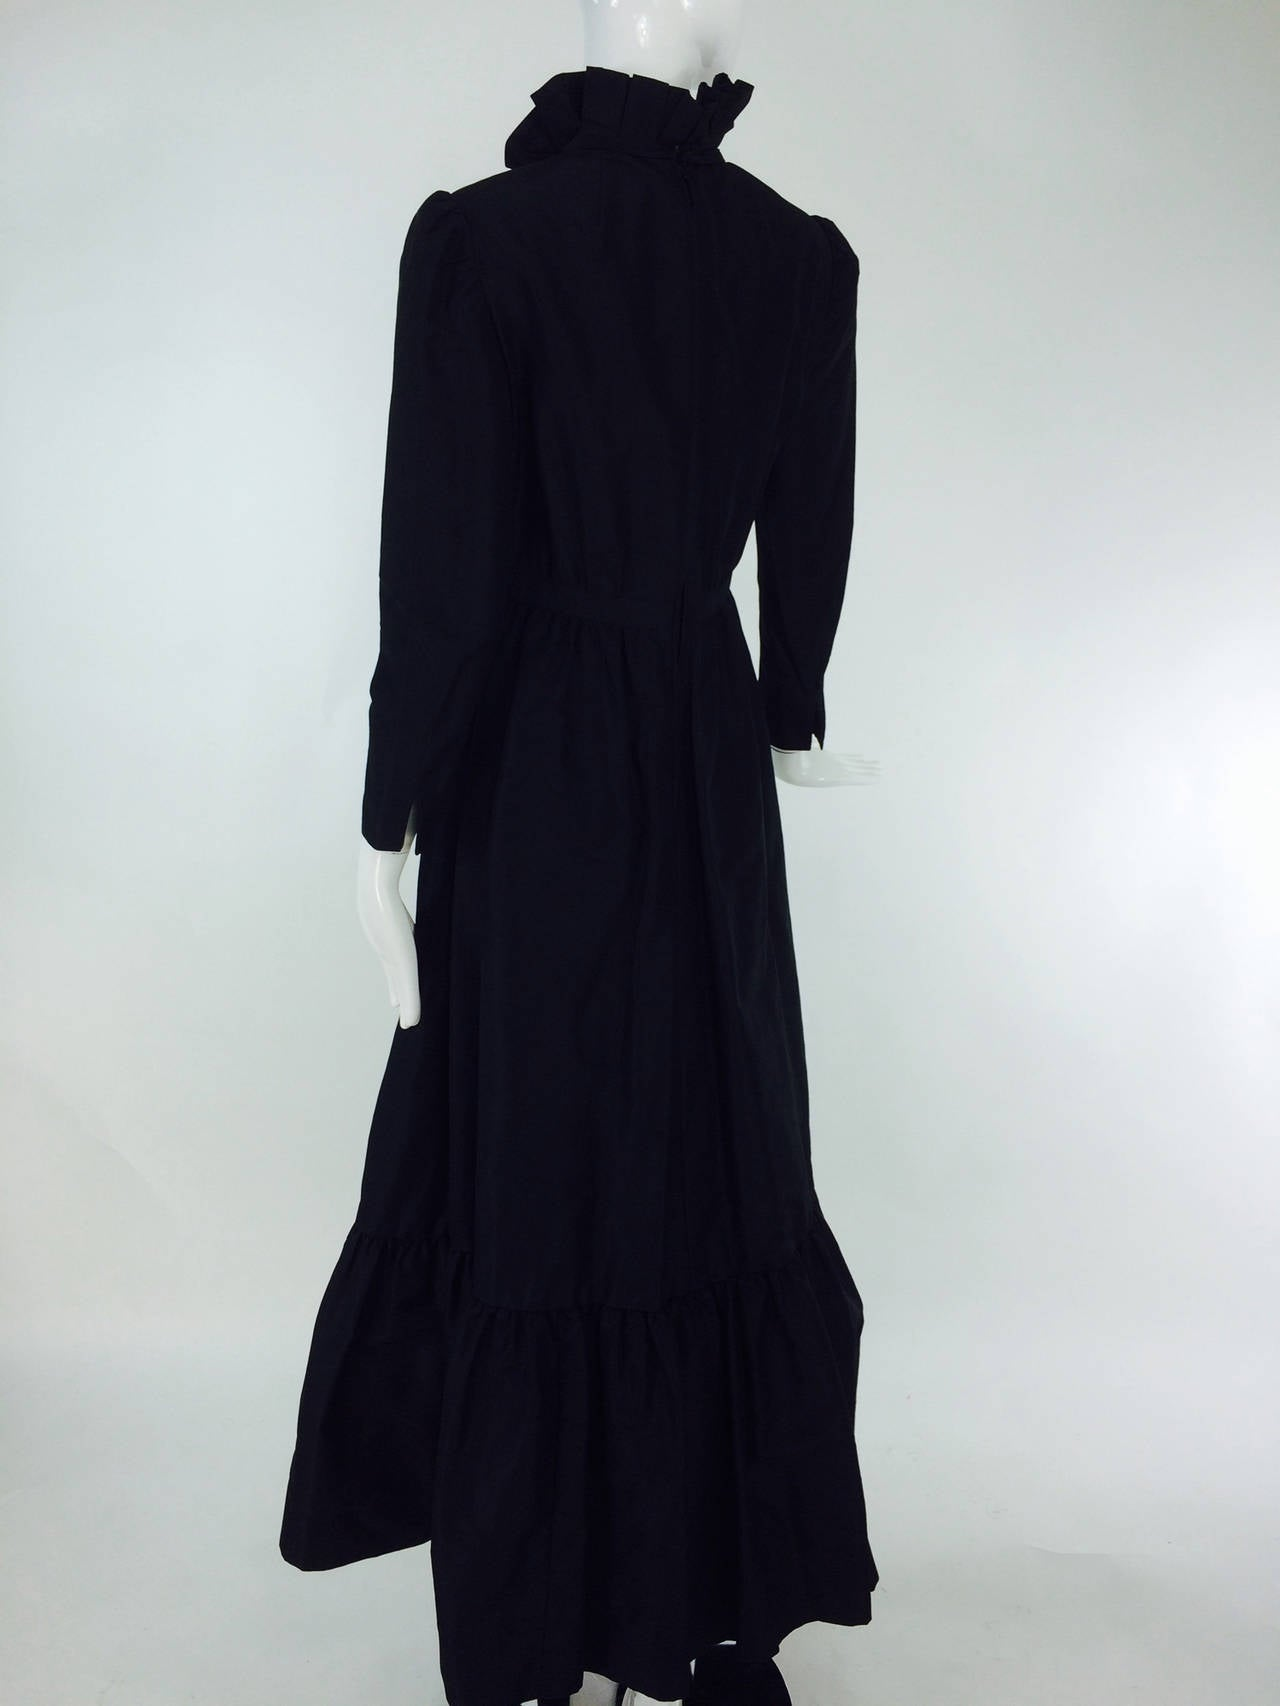 Shannon Rodgers for Jerry Silverman black Victorian style gown 1960s In Excellent Condition For Sale In West Palm Beach, FL